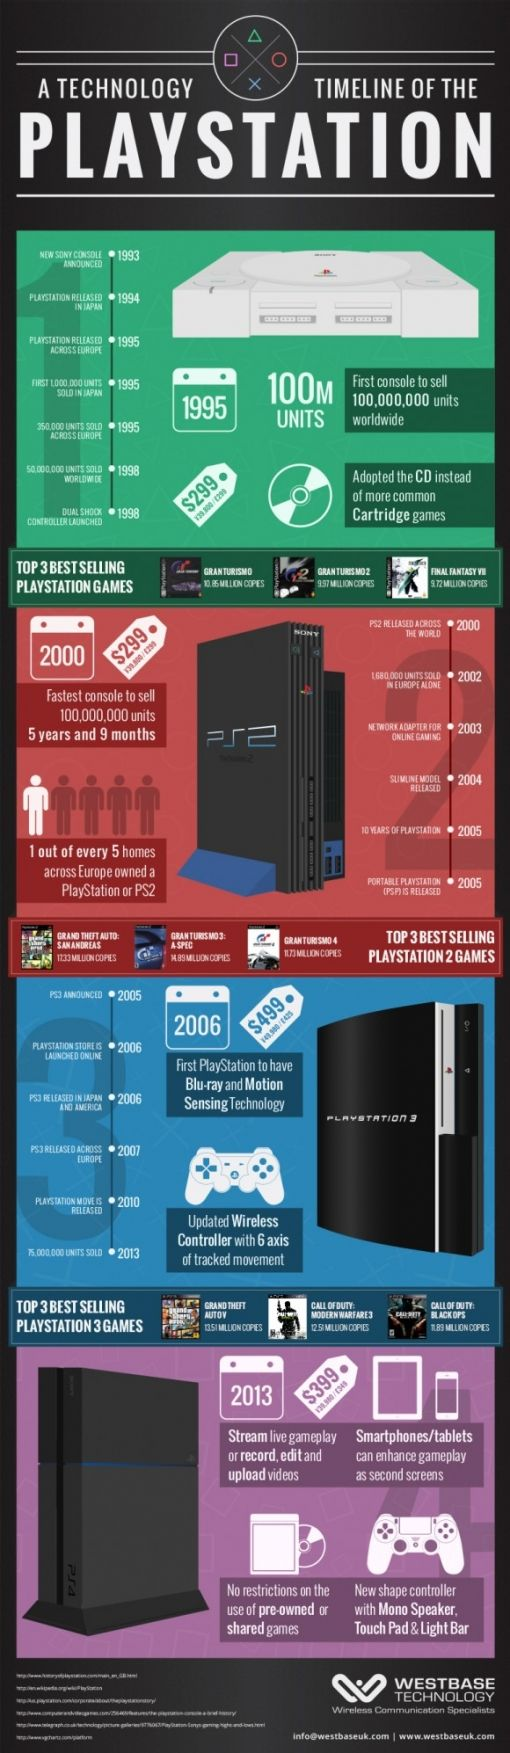 infographic-playstation